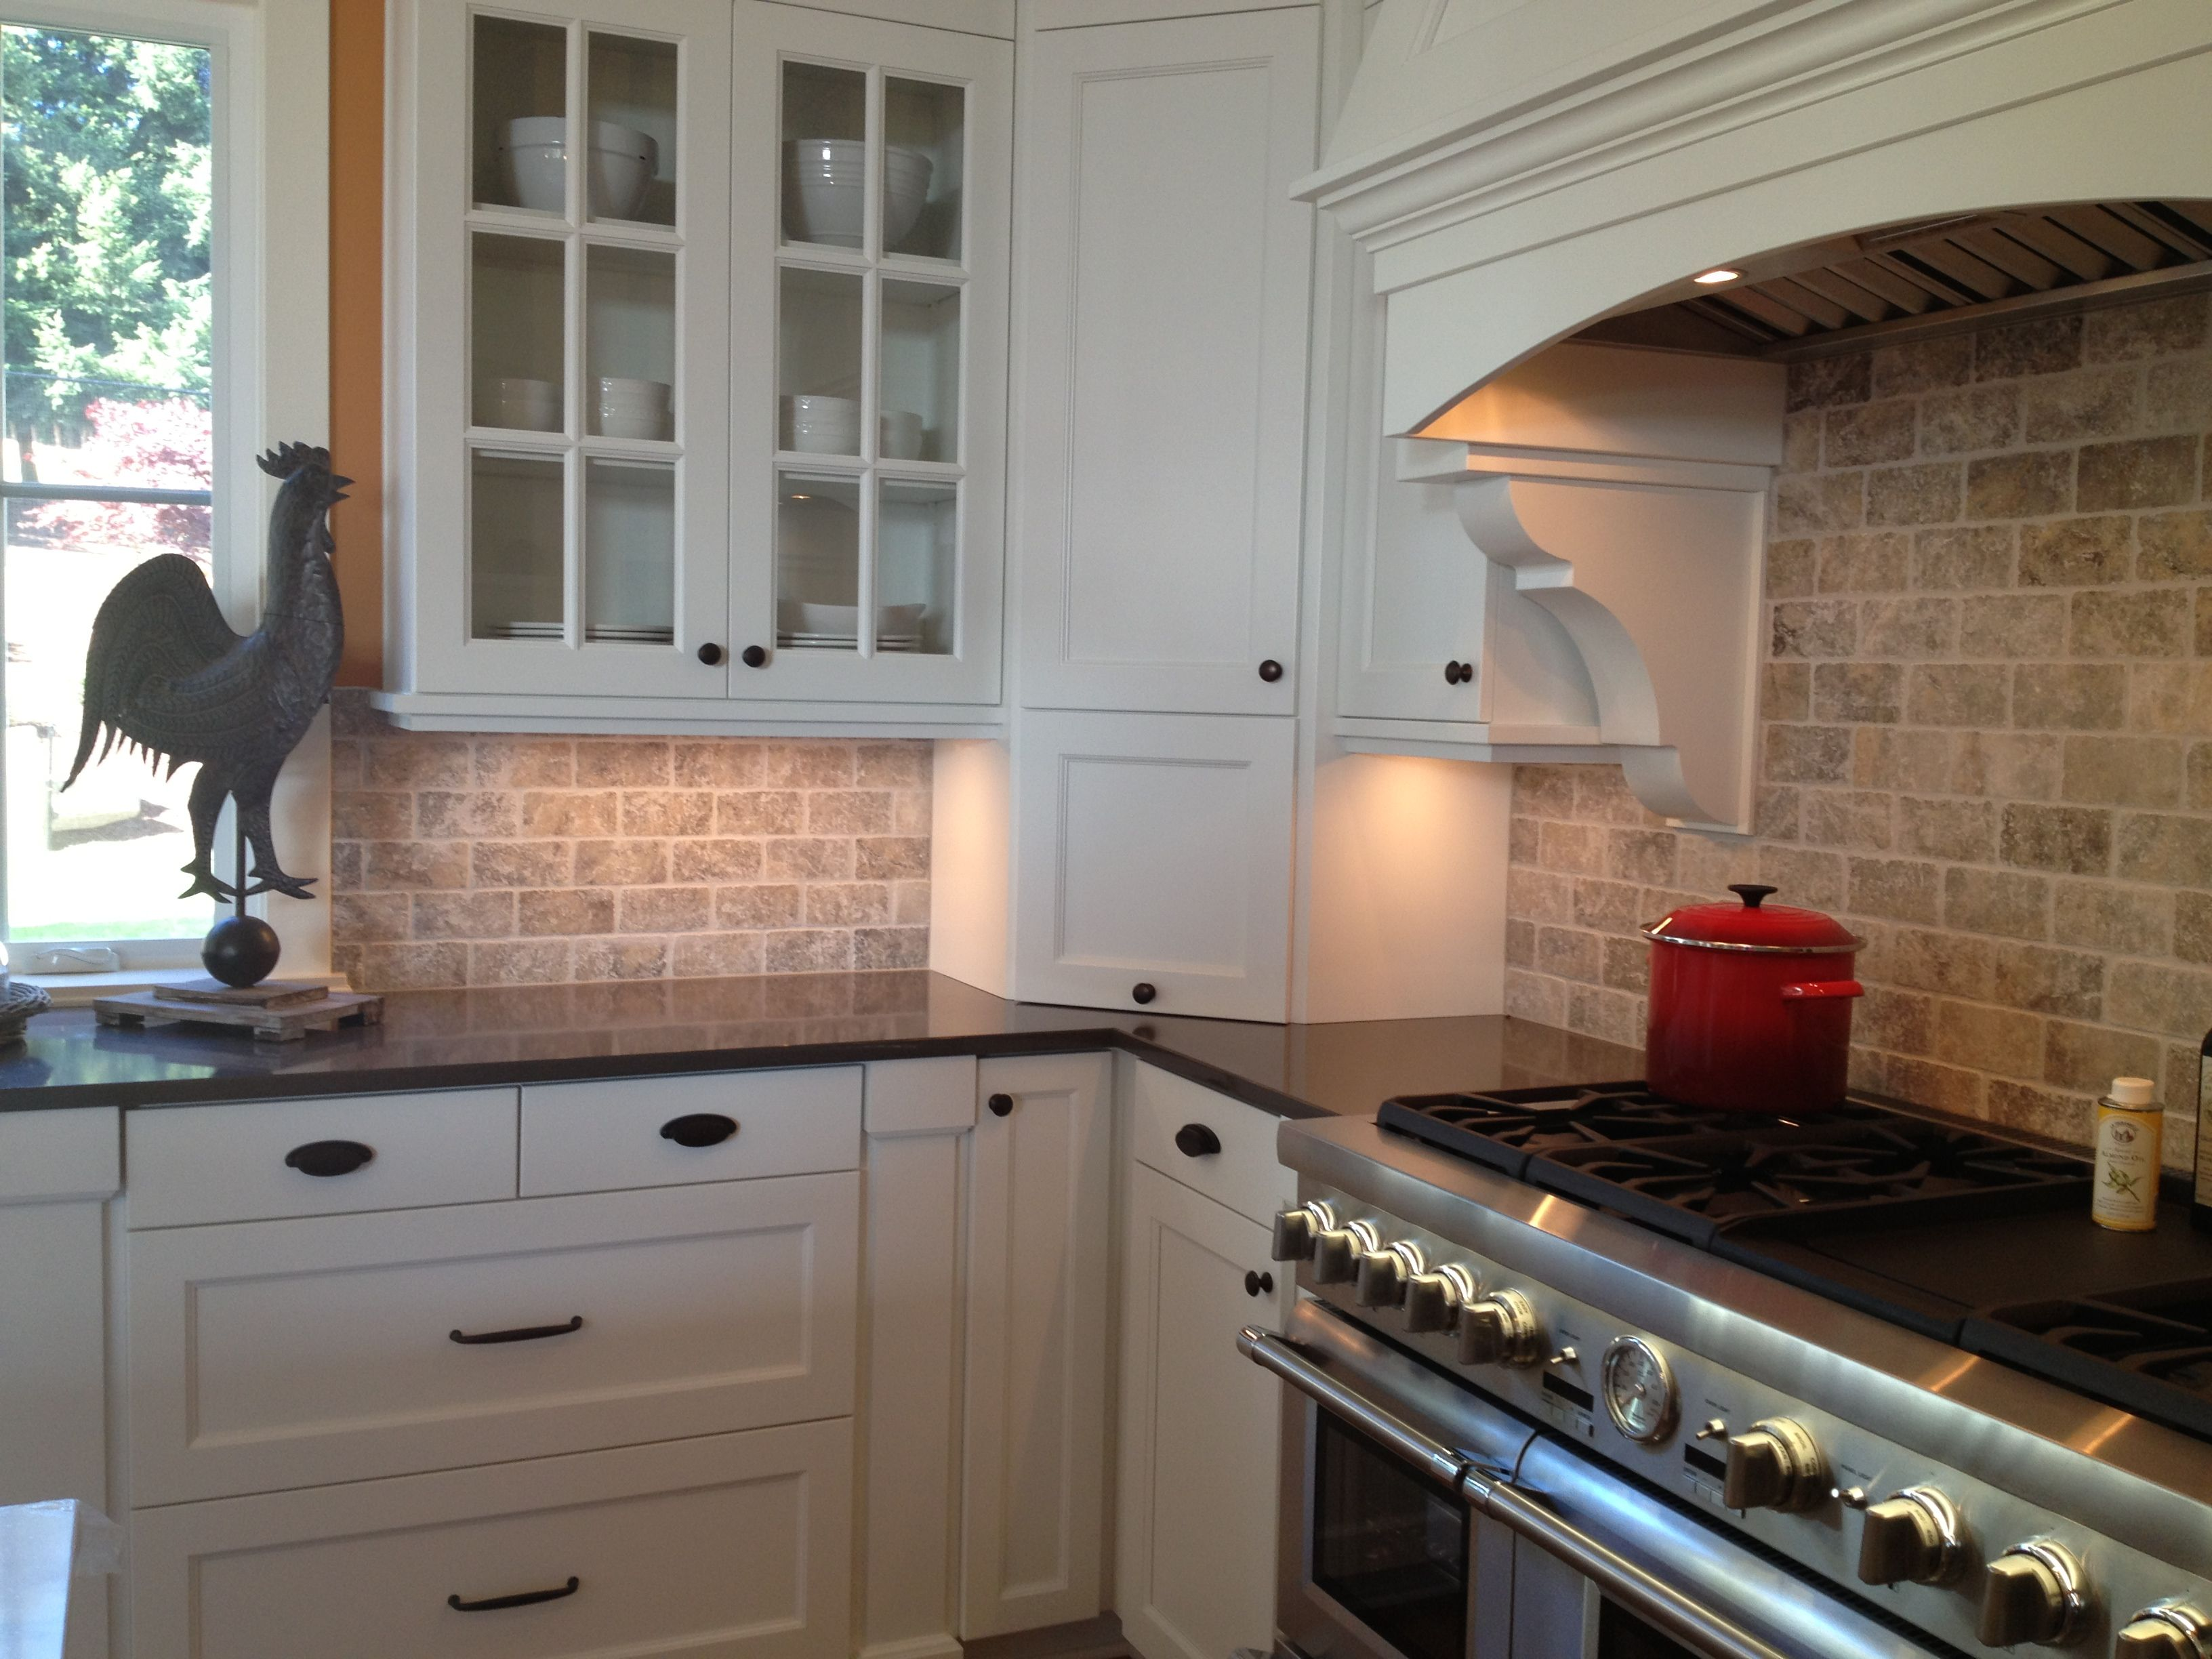 Picture of Kitchen Travertine Backsplash with White Cabinets and ...